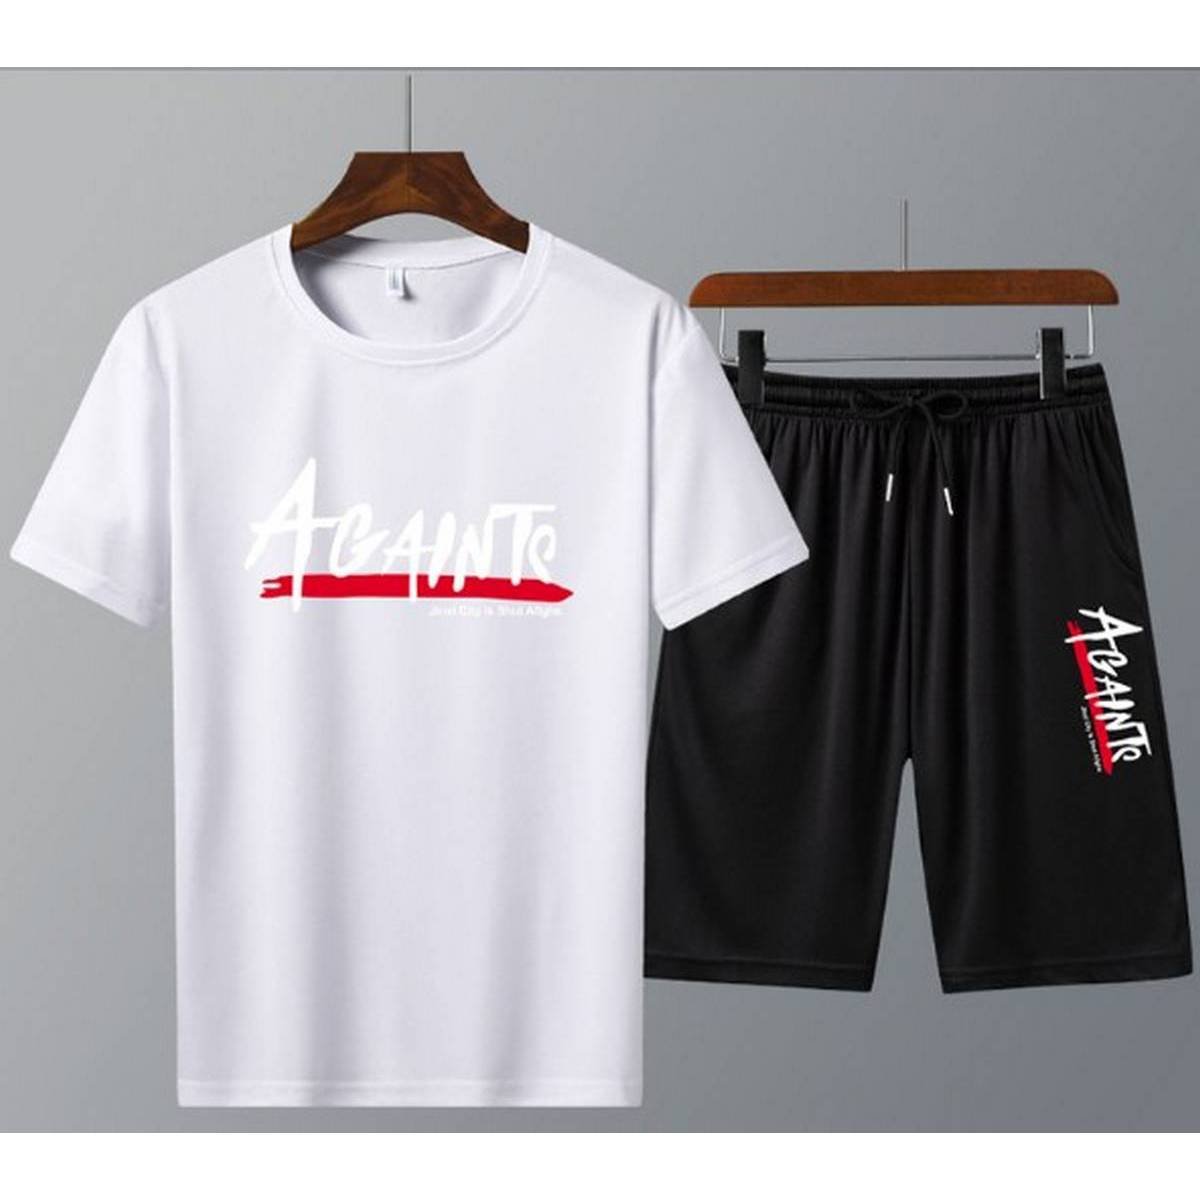 Men's Clothing Summer Breathable T-Shirt  and Black Shorts  Gym wear and comfortable